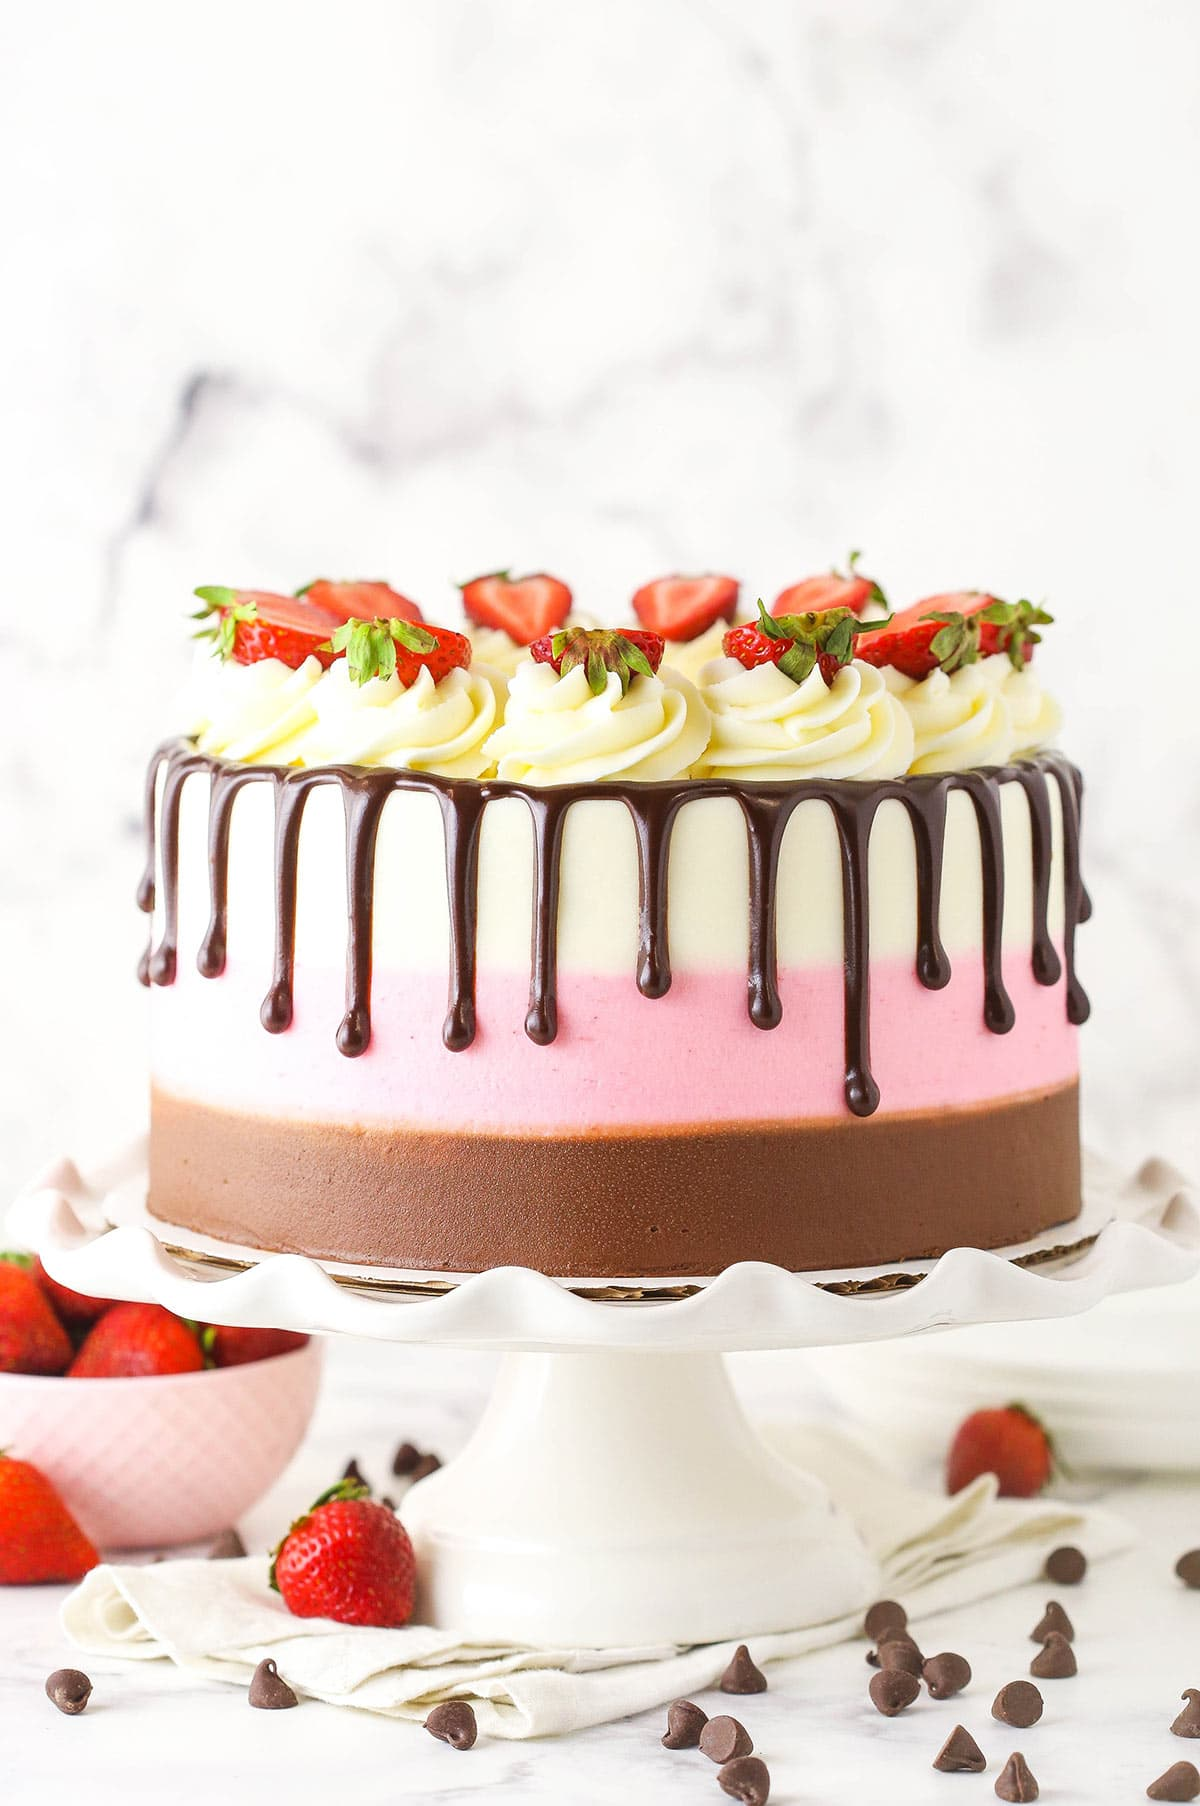 A neapolitan cake sitting on a white cake stand with strawberries and chocolate chips on the counter below